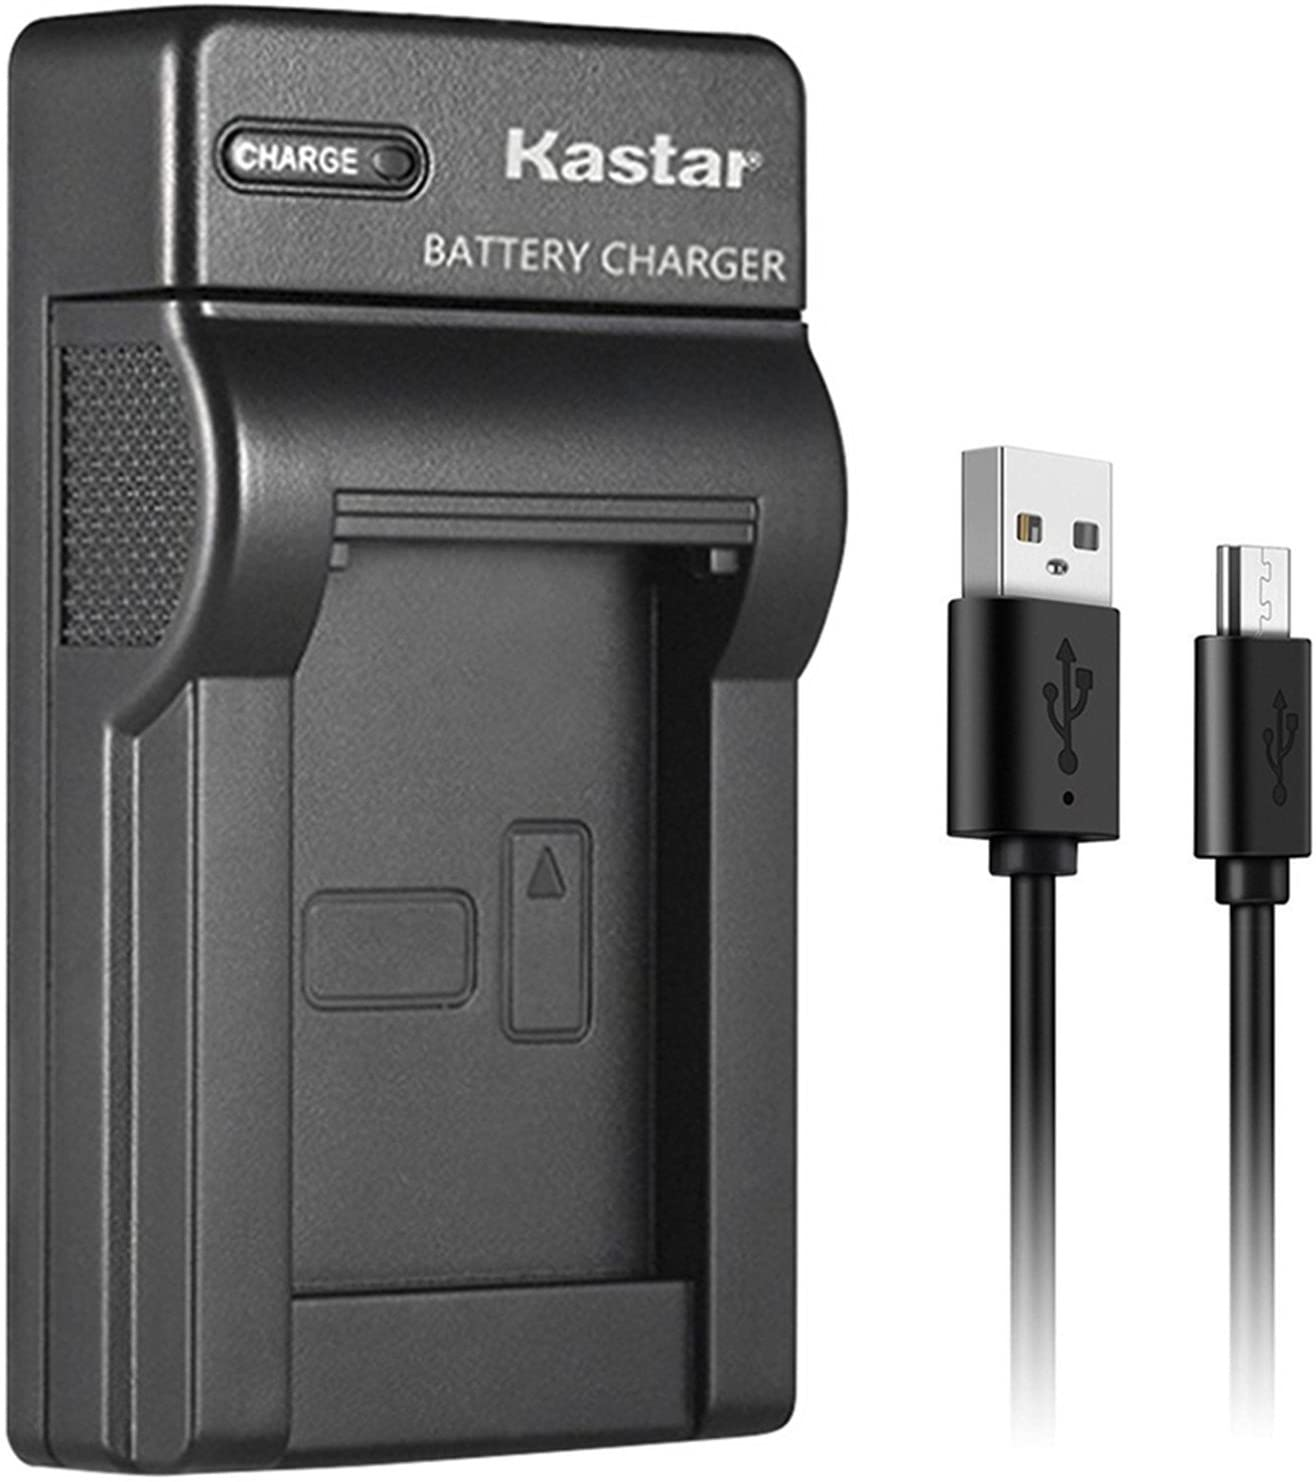 Kastar Slim USB Charger for Sony NP-FV100 NP-FH100 DCR-SR15 SR21 SR68 SR88 SX15 SX21 SX44 SX45 SX63 SX65 SX83 SX85 HDR-CX110 CX115 CX130 CX150 CX160 XR160 CX360 CX560 CX700 PJ10 PJ30 PJ50 Cameras